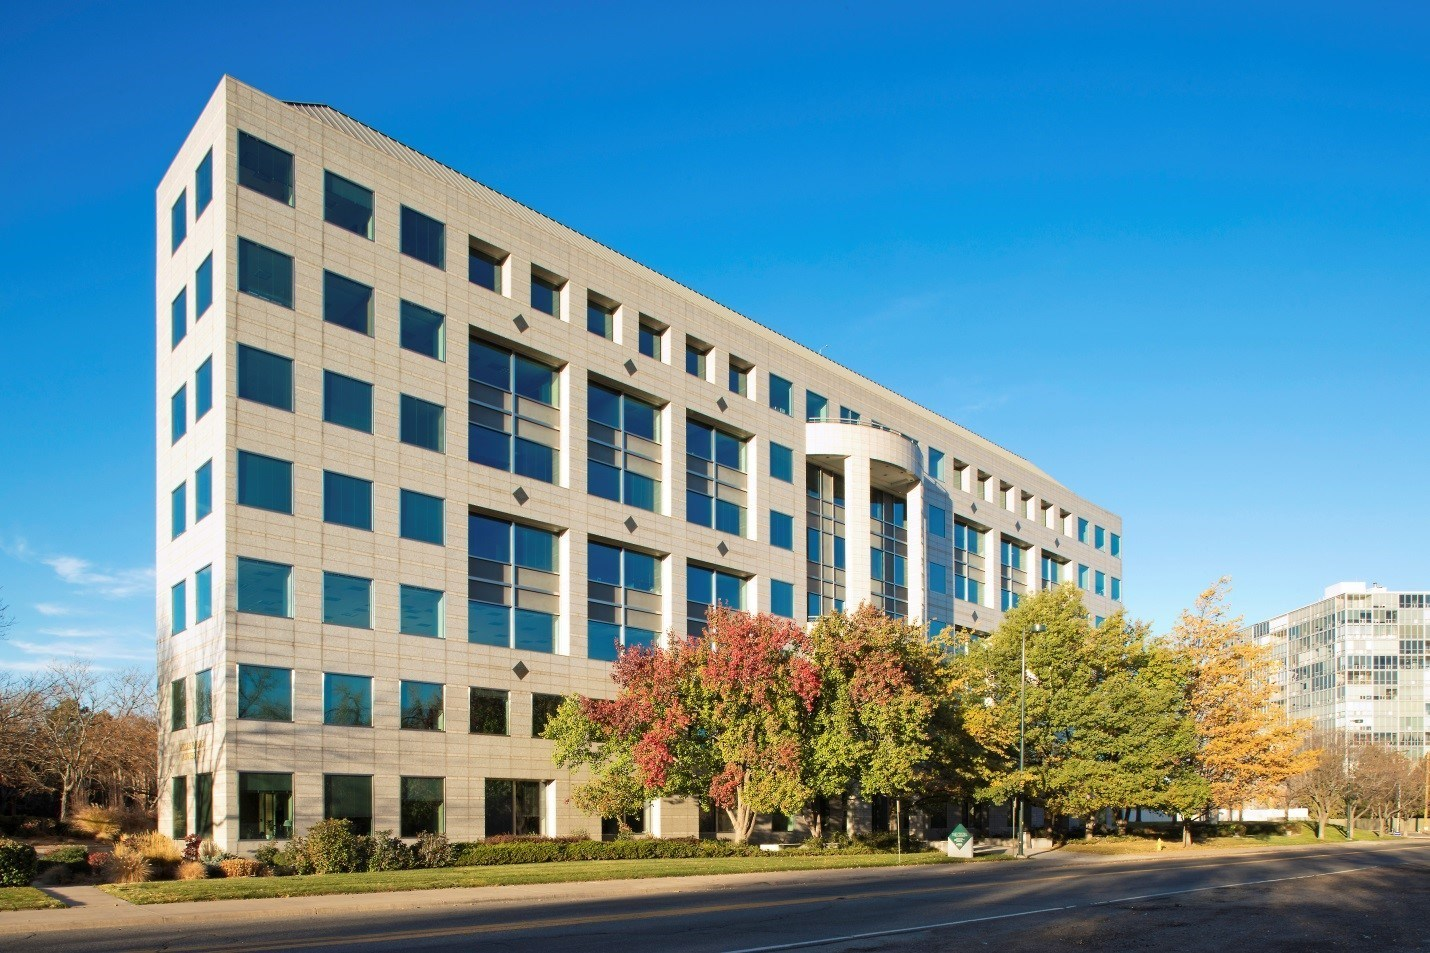 Amstar Closes On The Citadel Cherry Creek Acquisition The tours to get you close to mother nature include sensoria. https www prnewswire com news releases amstar closes on the citadel cherry creek acquisition 300475186 html